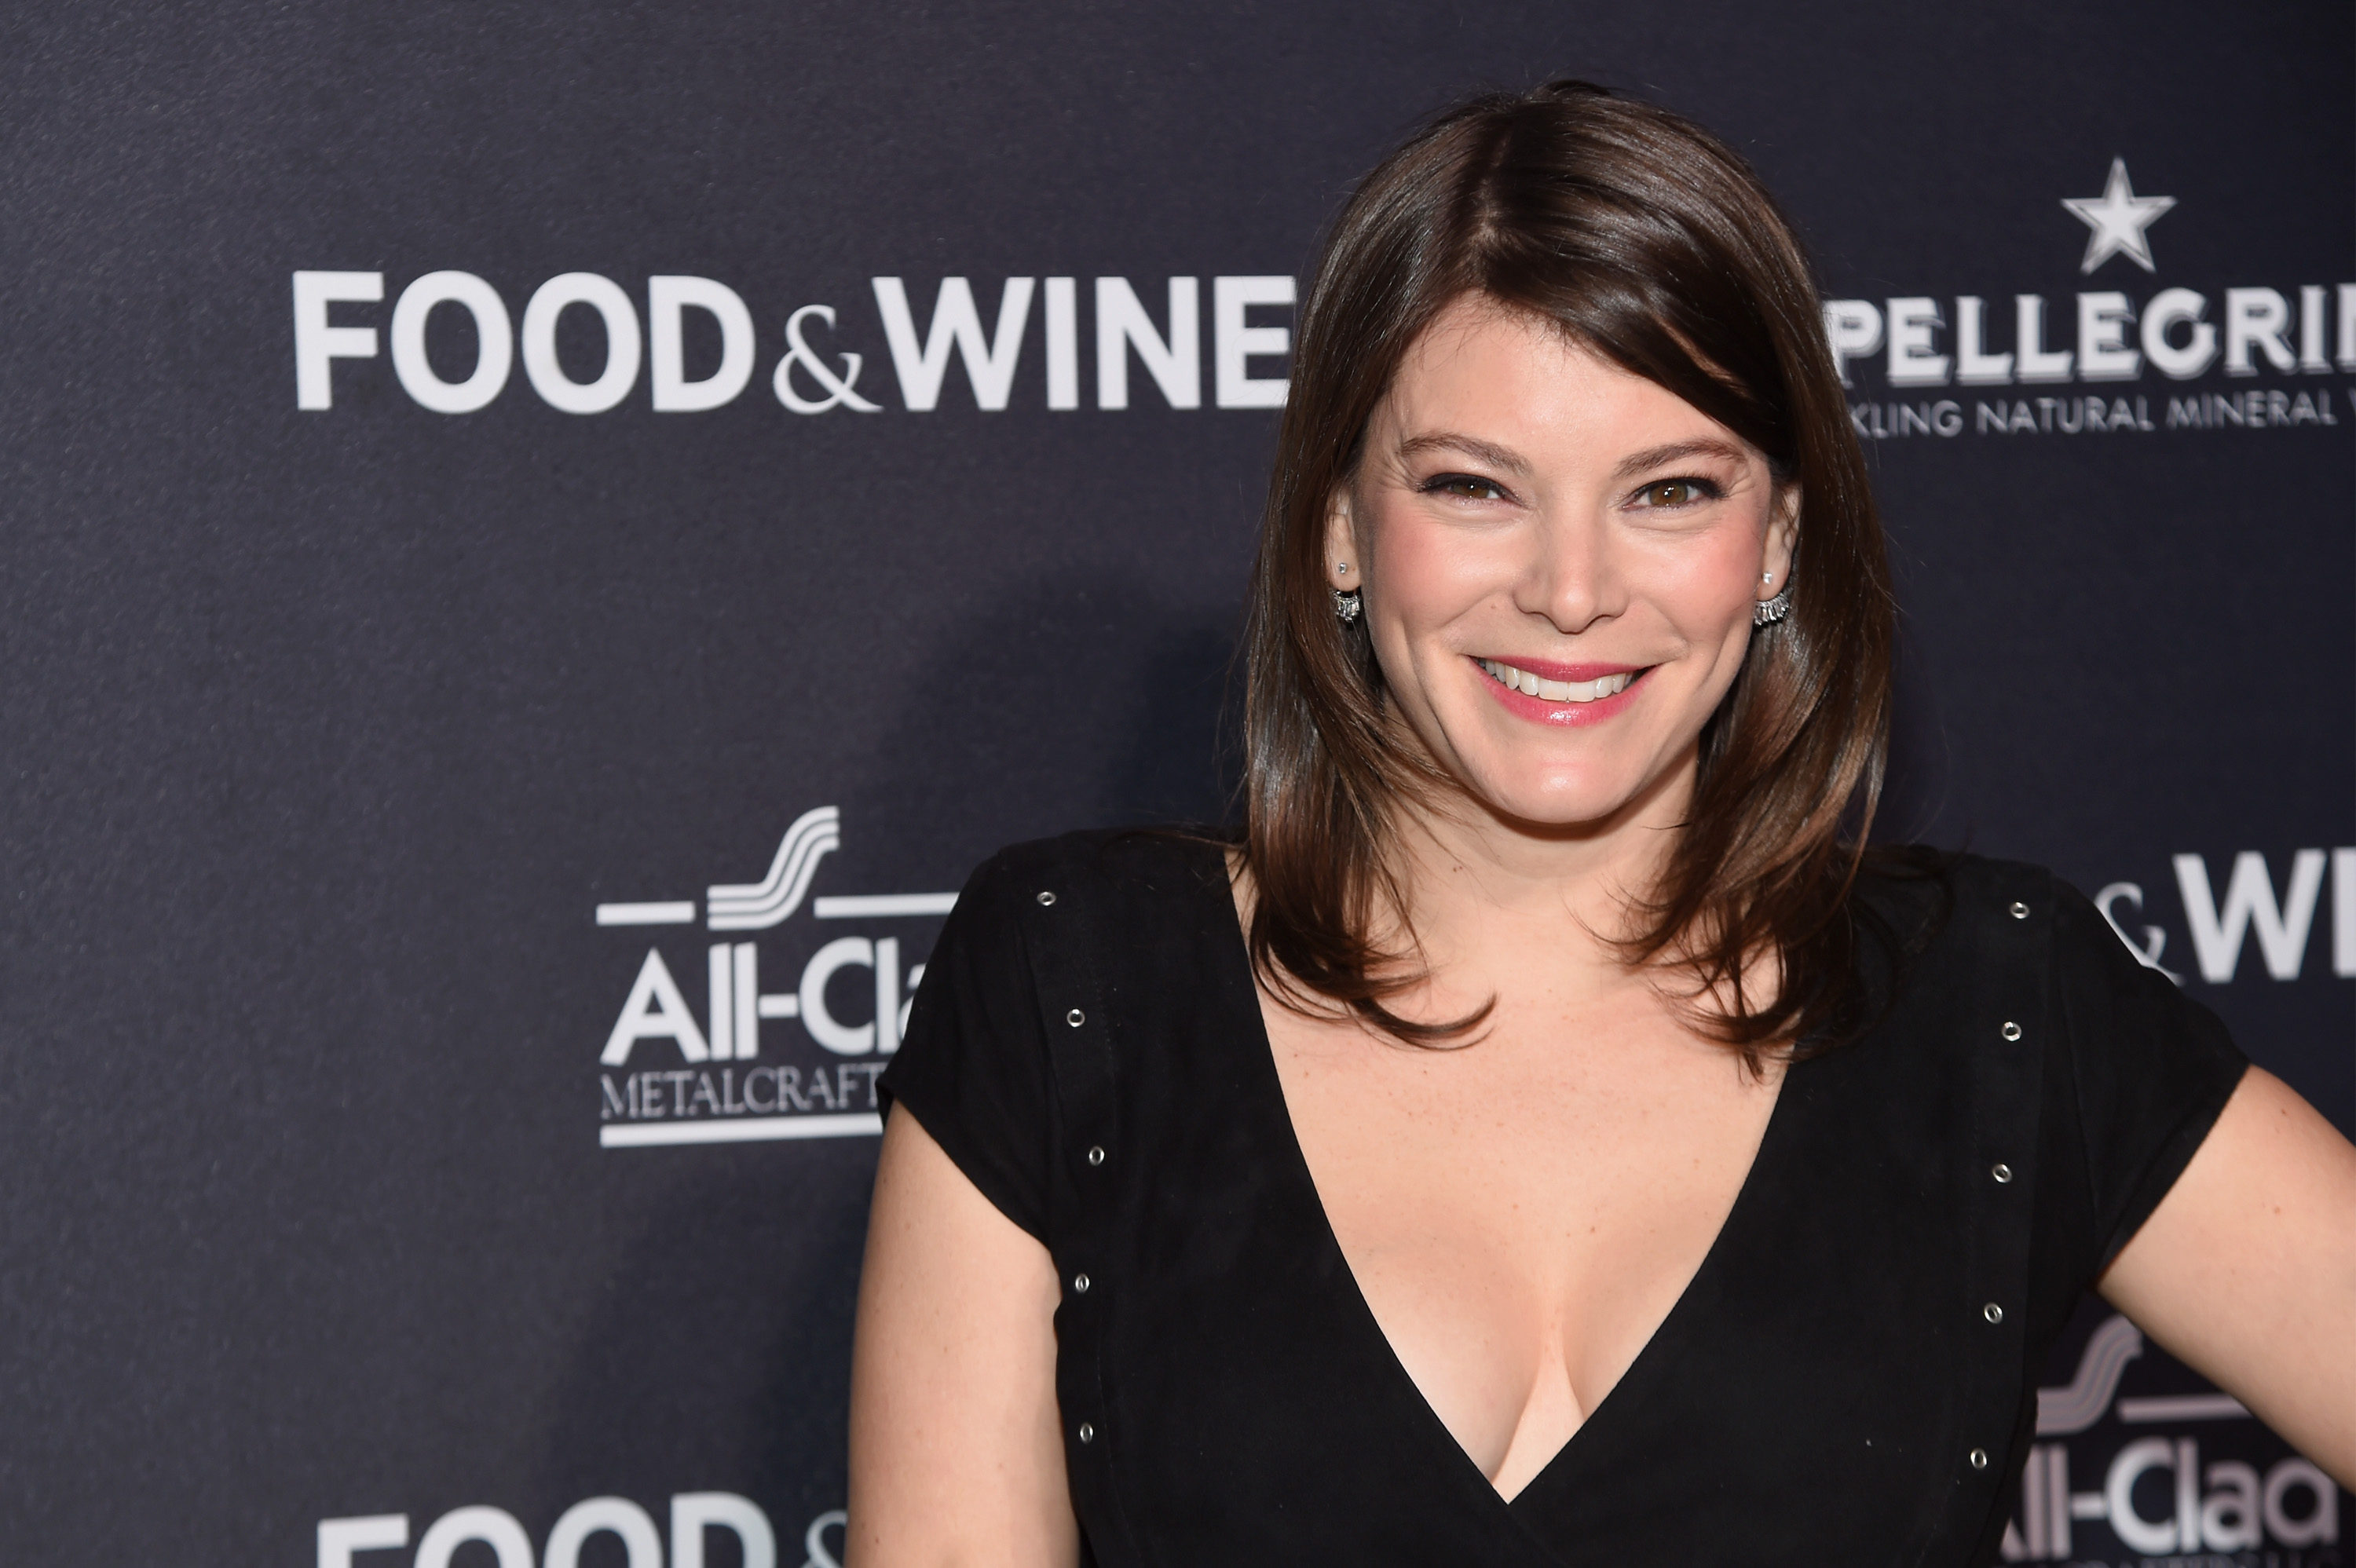 Writer Gail Simmons attends FOOD & WINE 2016 Best New Chefs event on April 5, 2016 in New York City.